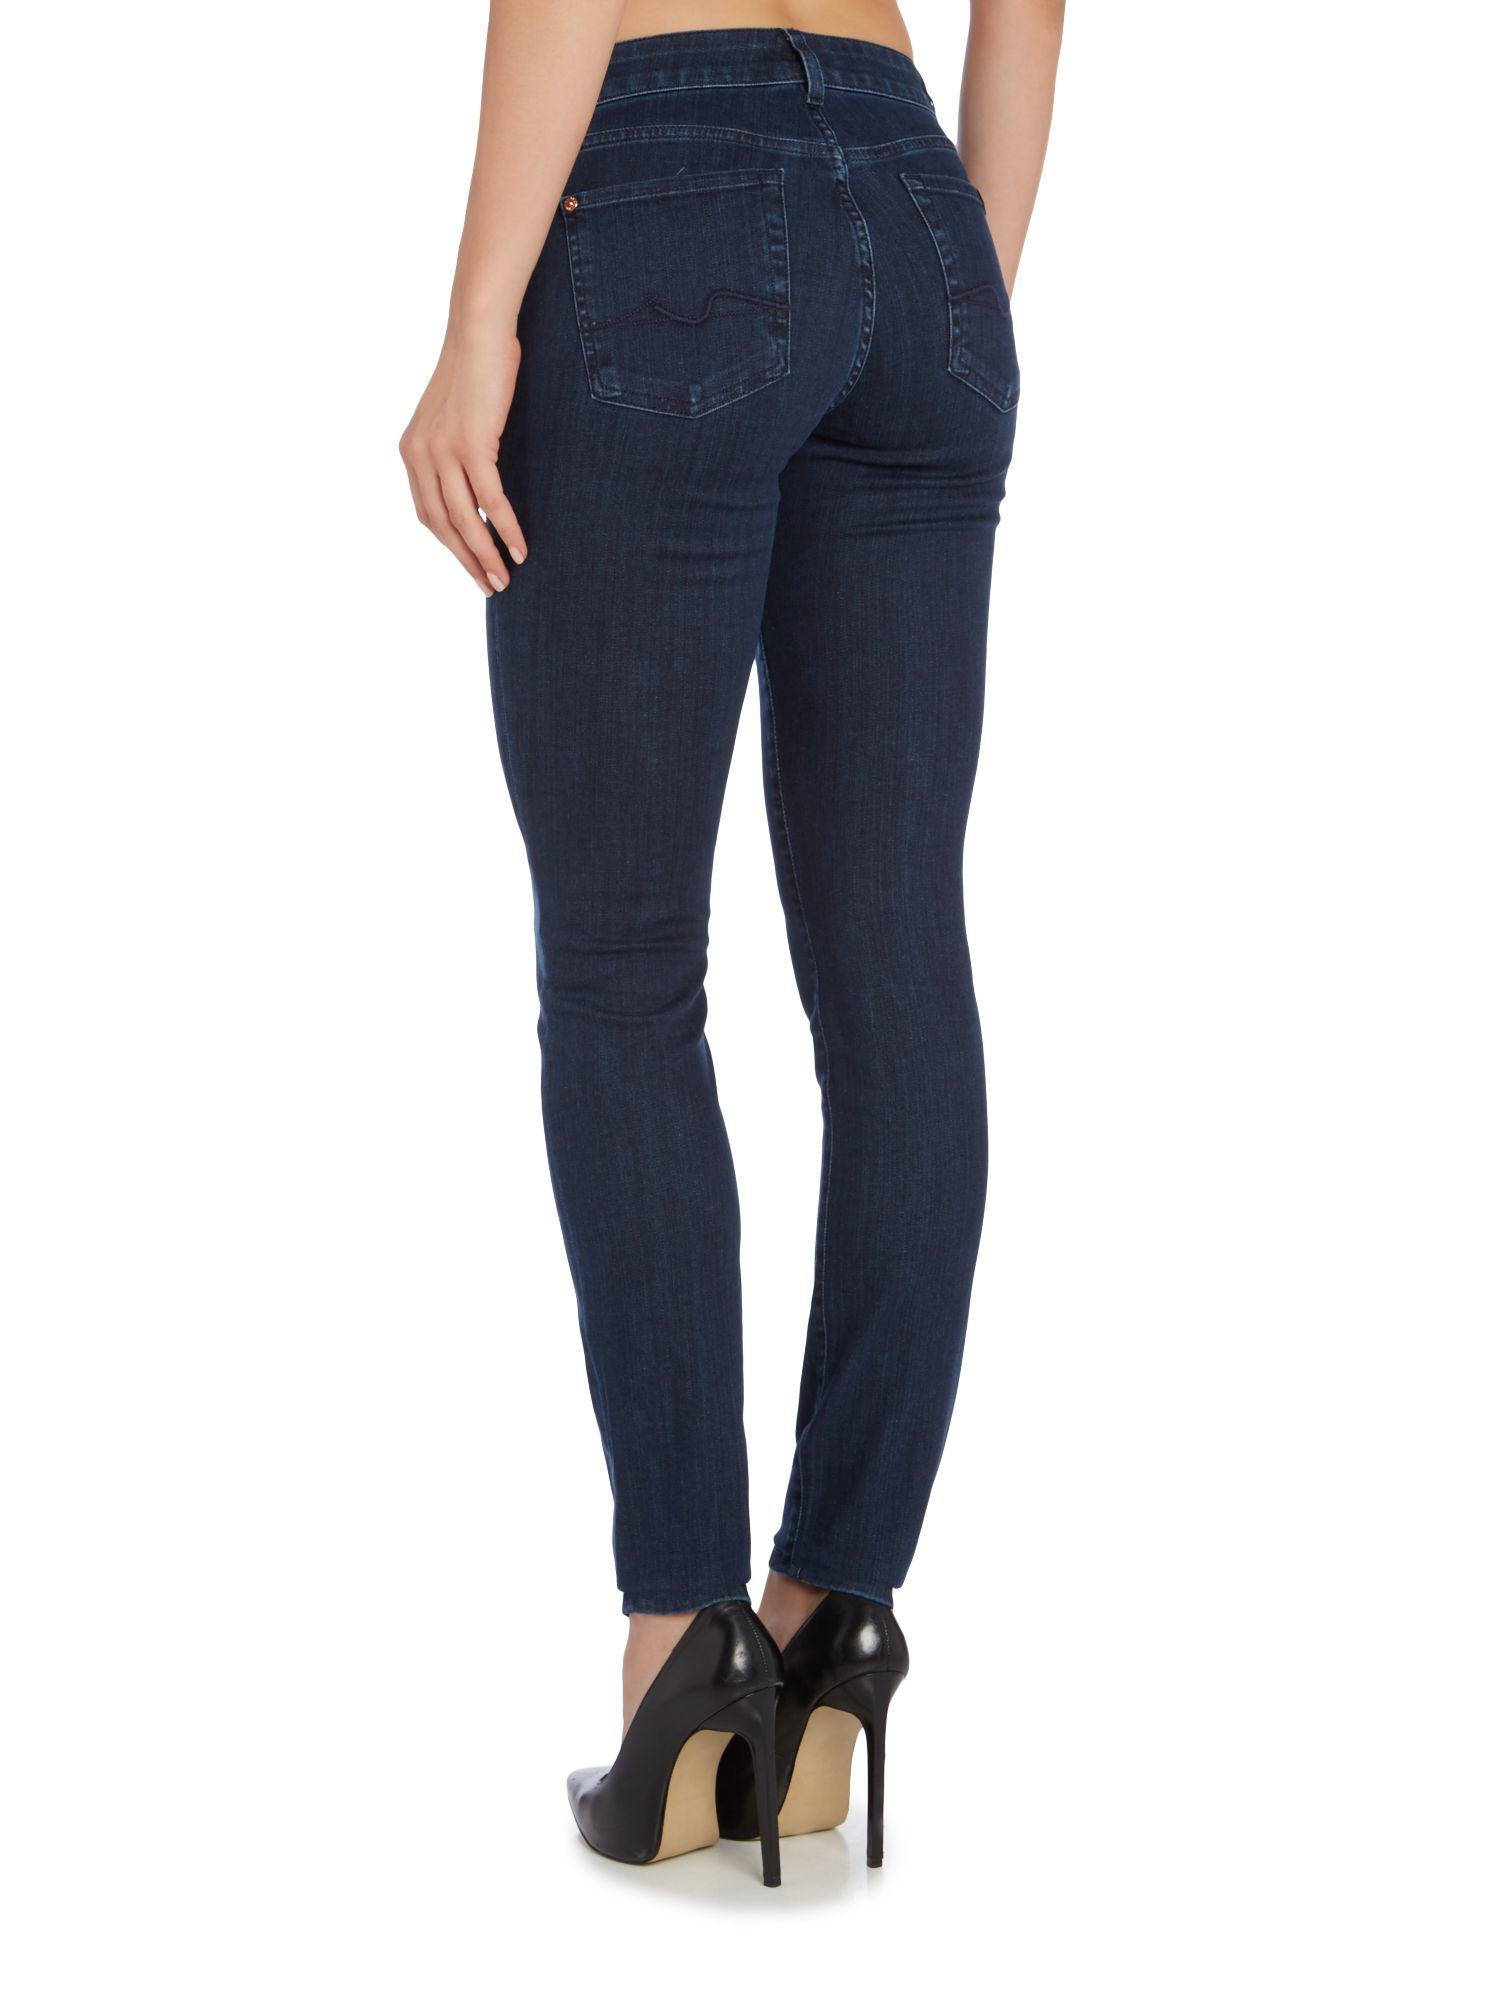 7 for all mankind cristen mid rise skinny jean in blue. Black Bedroom Furniture Sets. Home Design Ideas